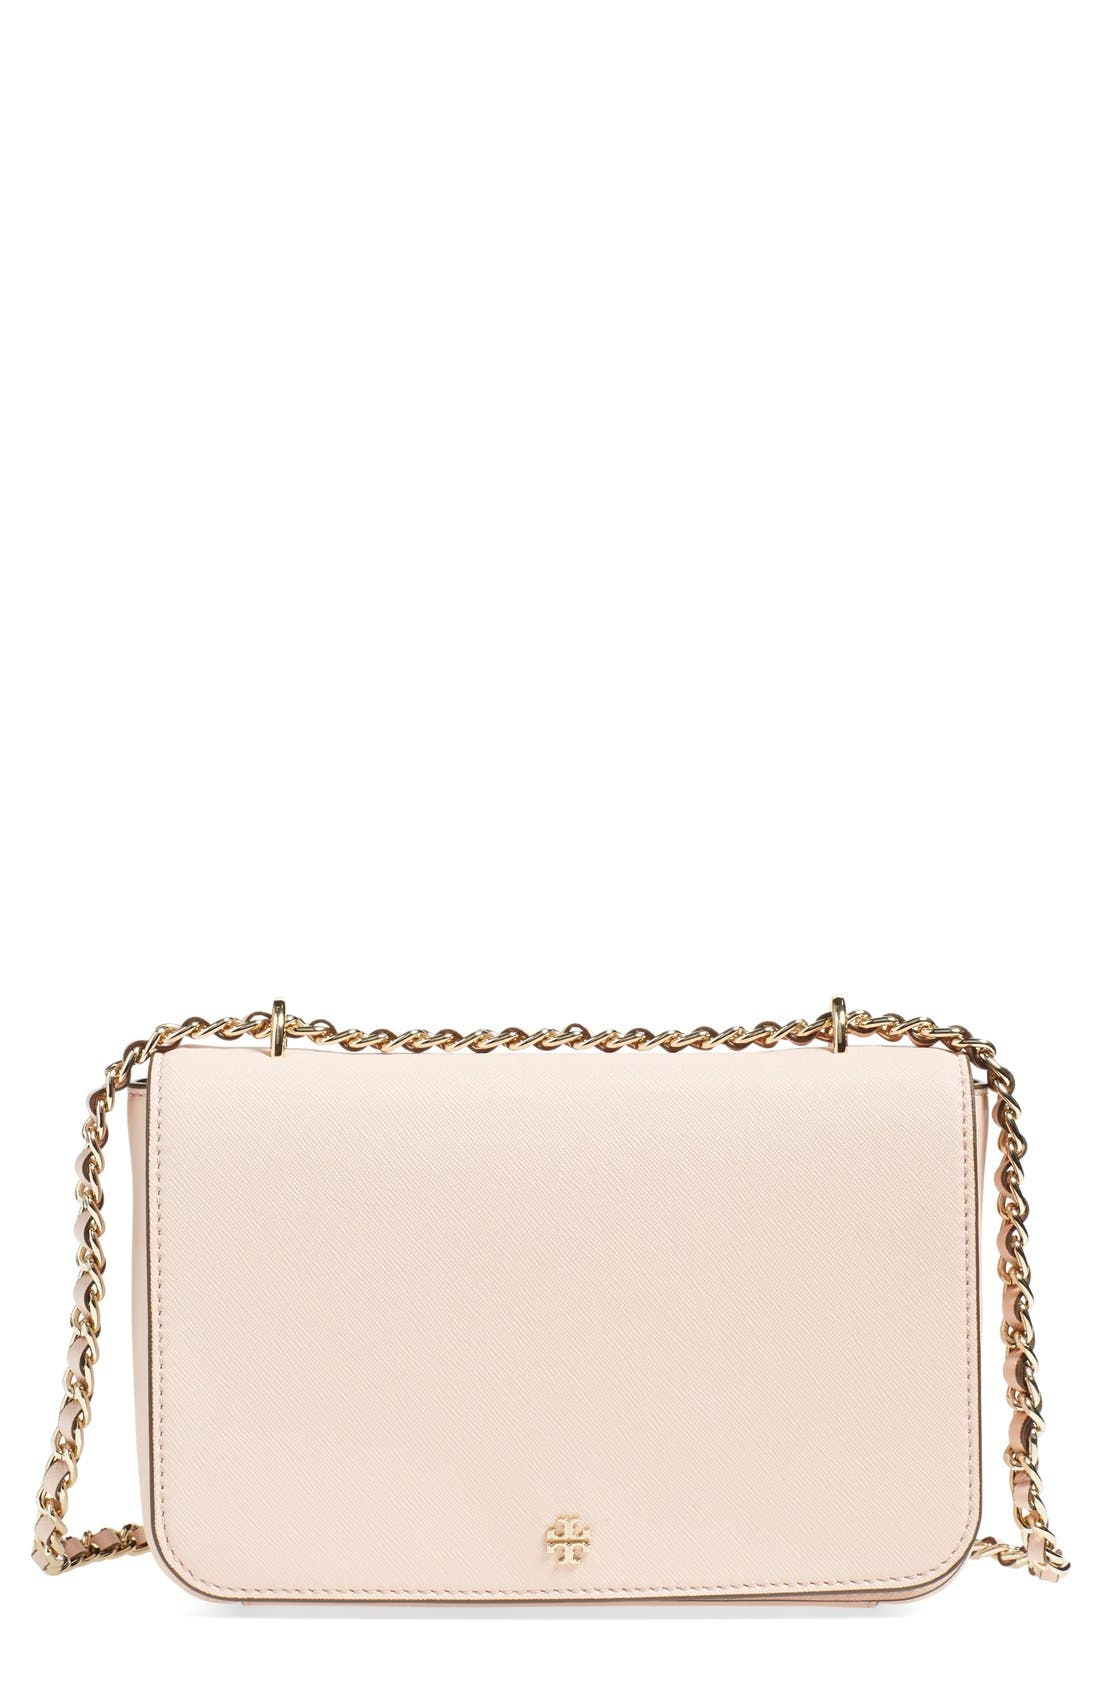 Main Image - Tory Burch 'Robinson' Leather Convertible Shoulder Bag